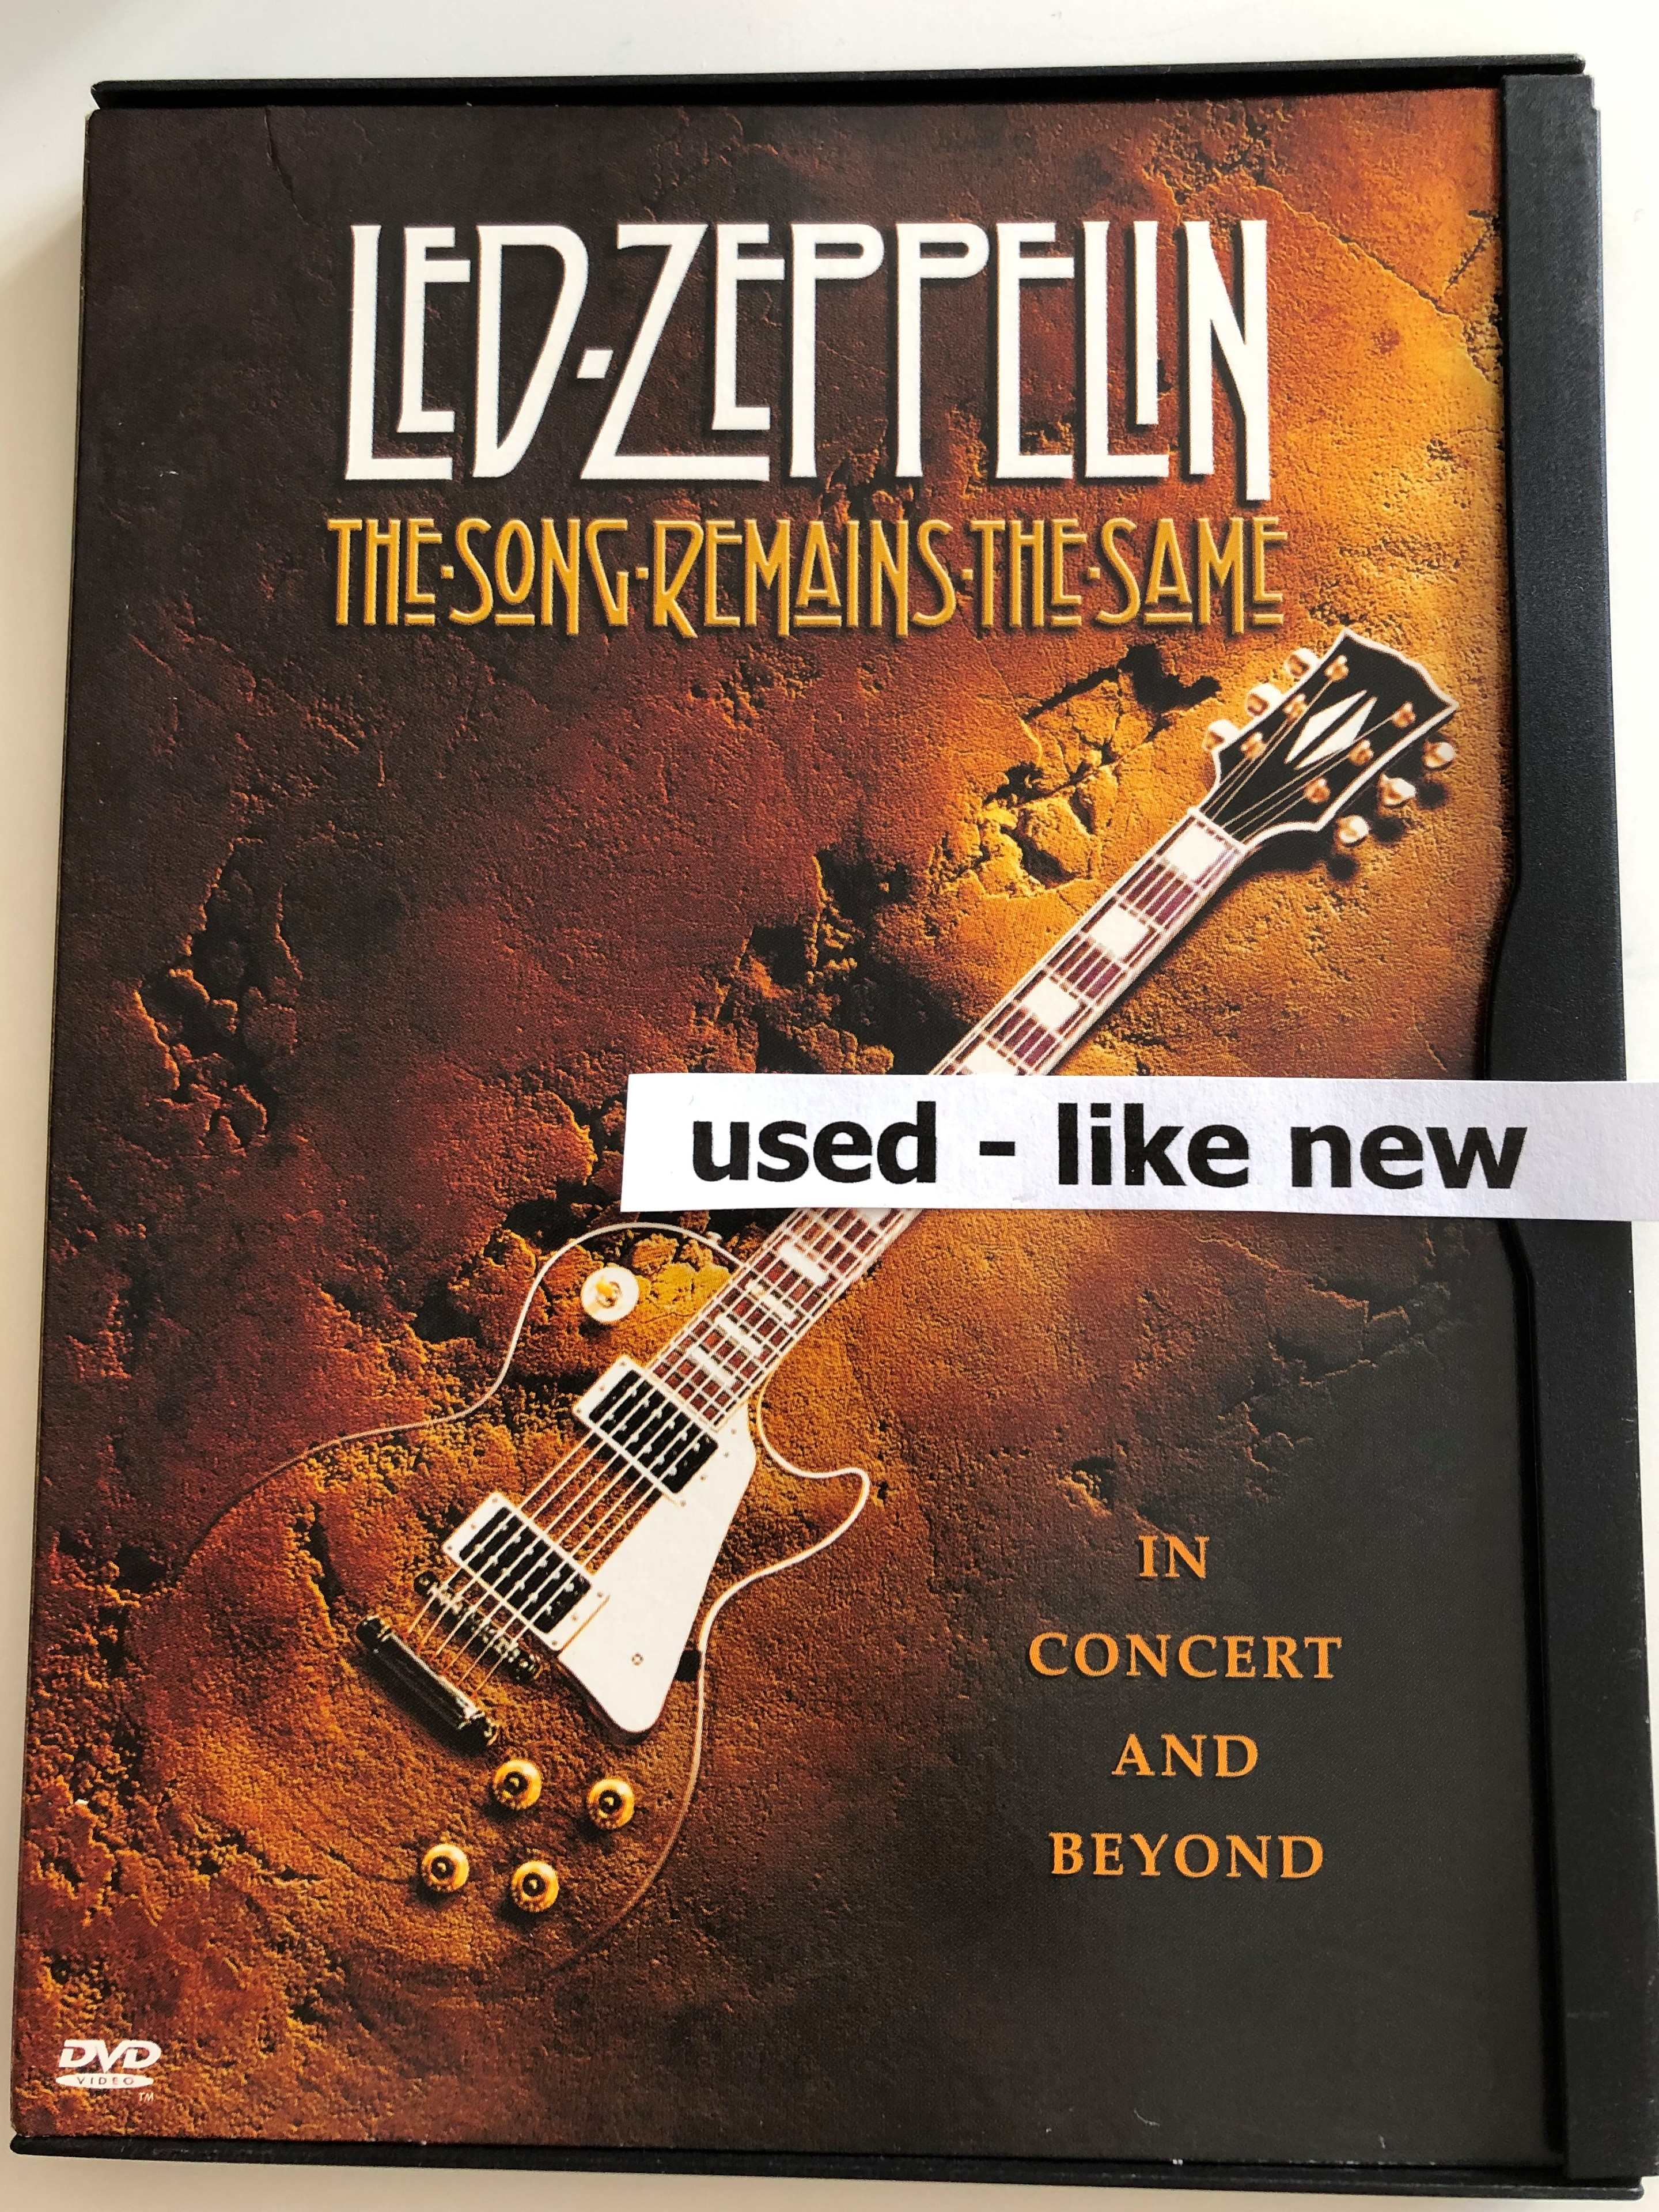 led-zeppelin-the-song-remains-the-same-dvd-1976-in-concert-and-beyond-2.jpg